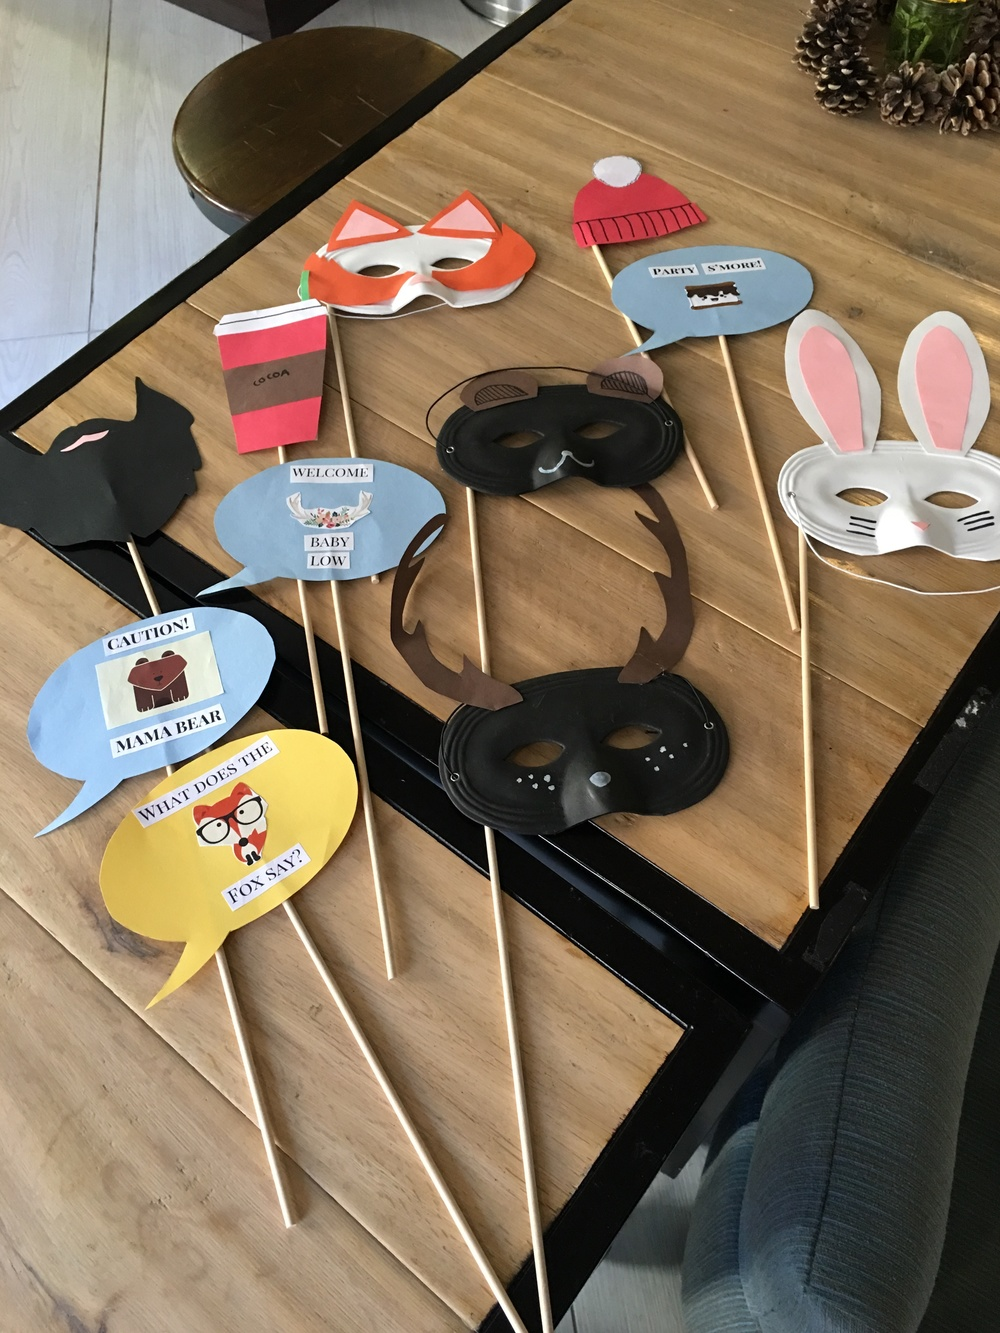 I made these fun photo props! used sticks, masks, and some construction paper templates.